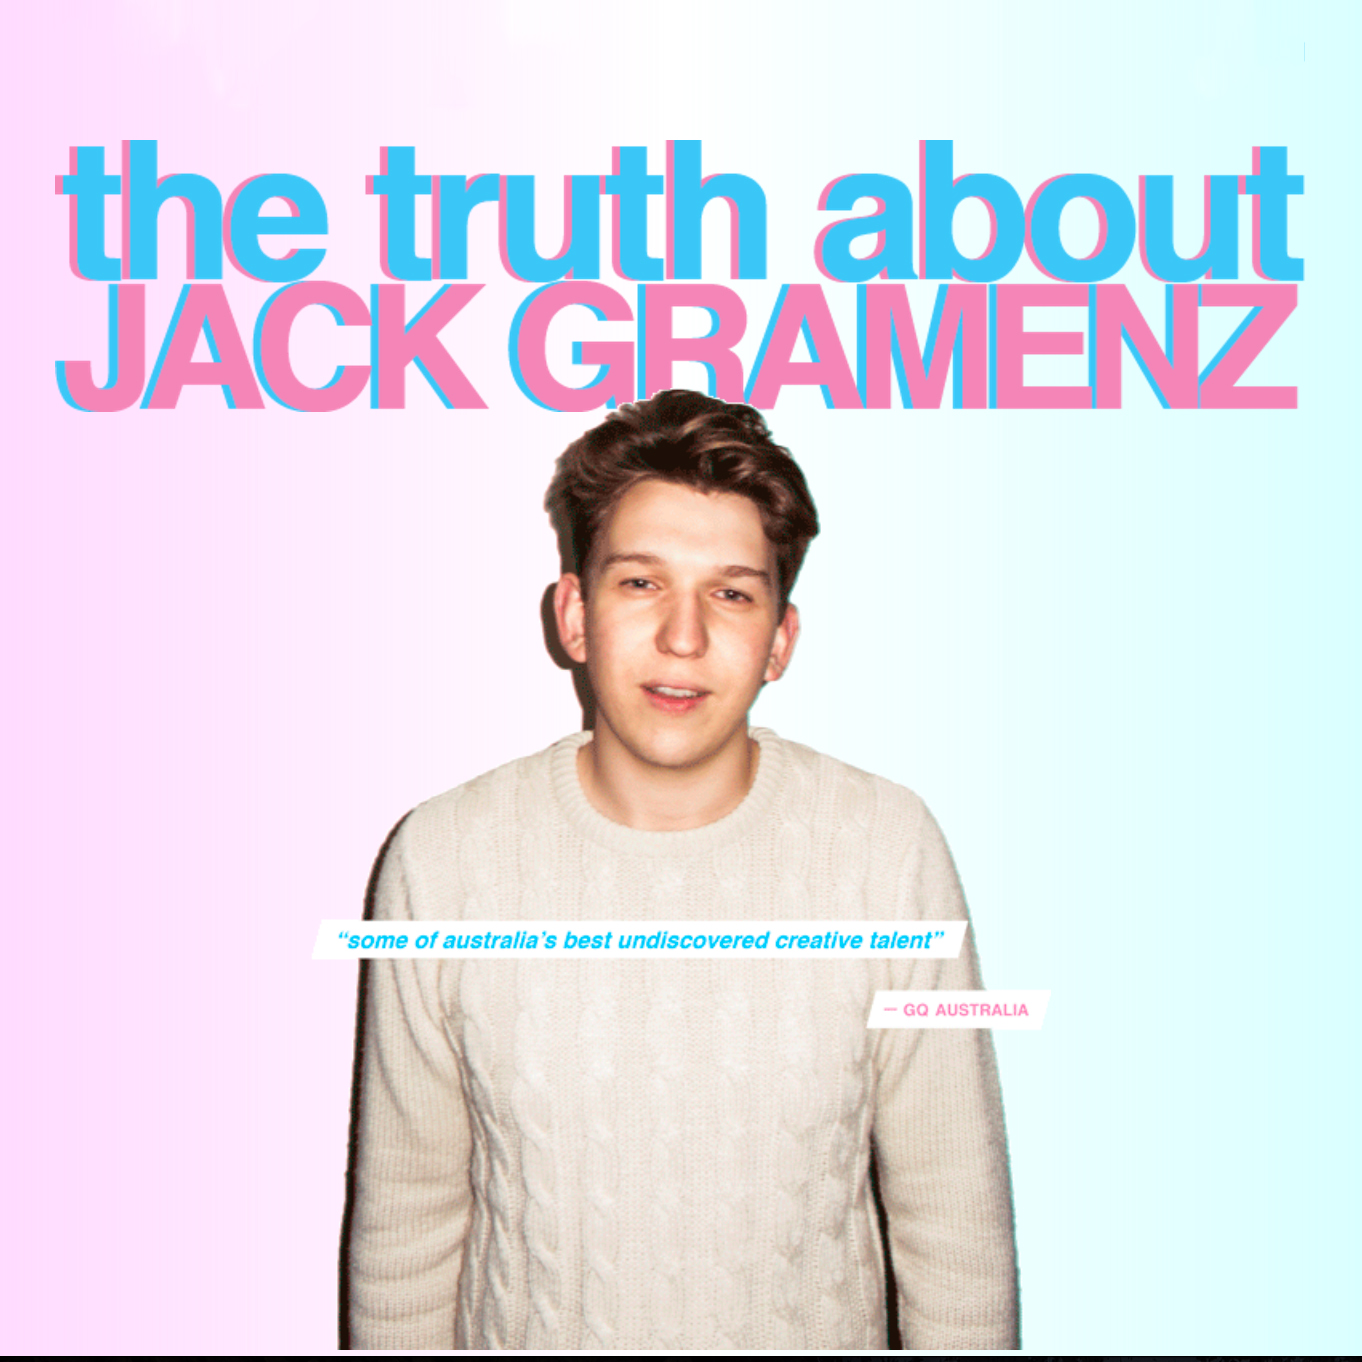 The Truth About Jack Gramenz